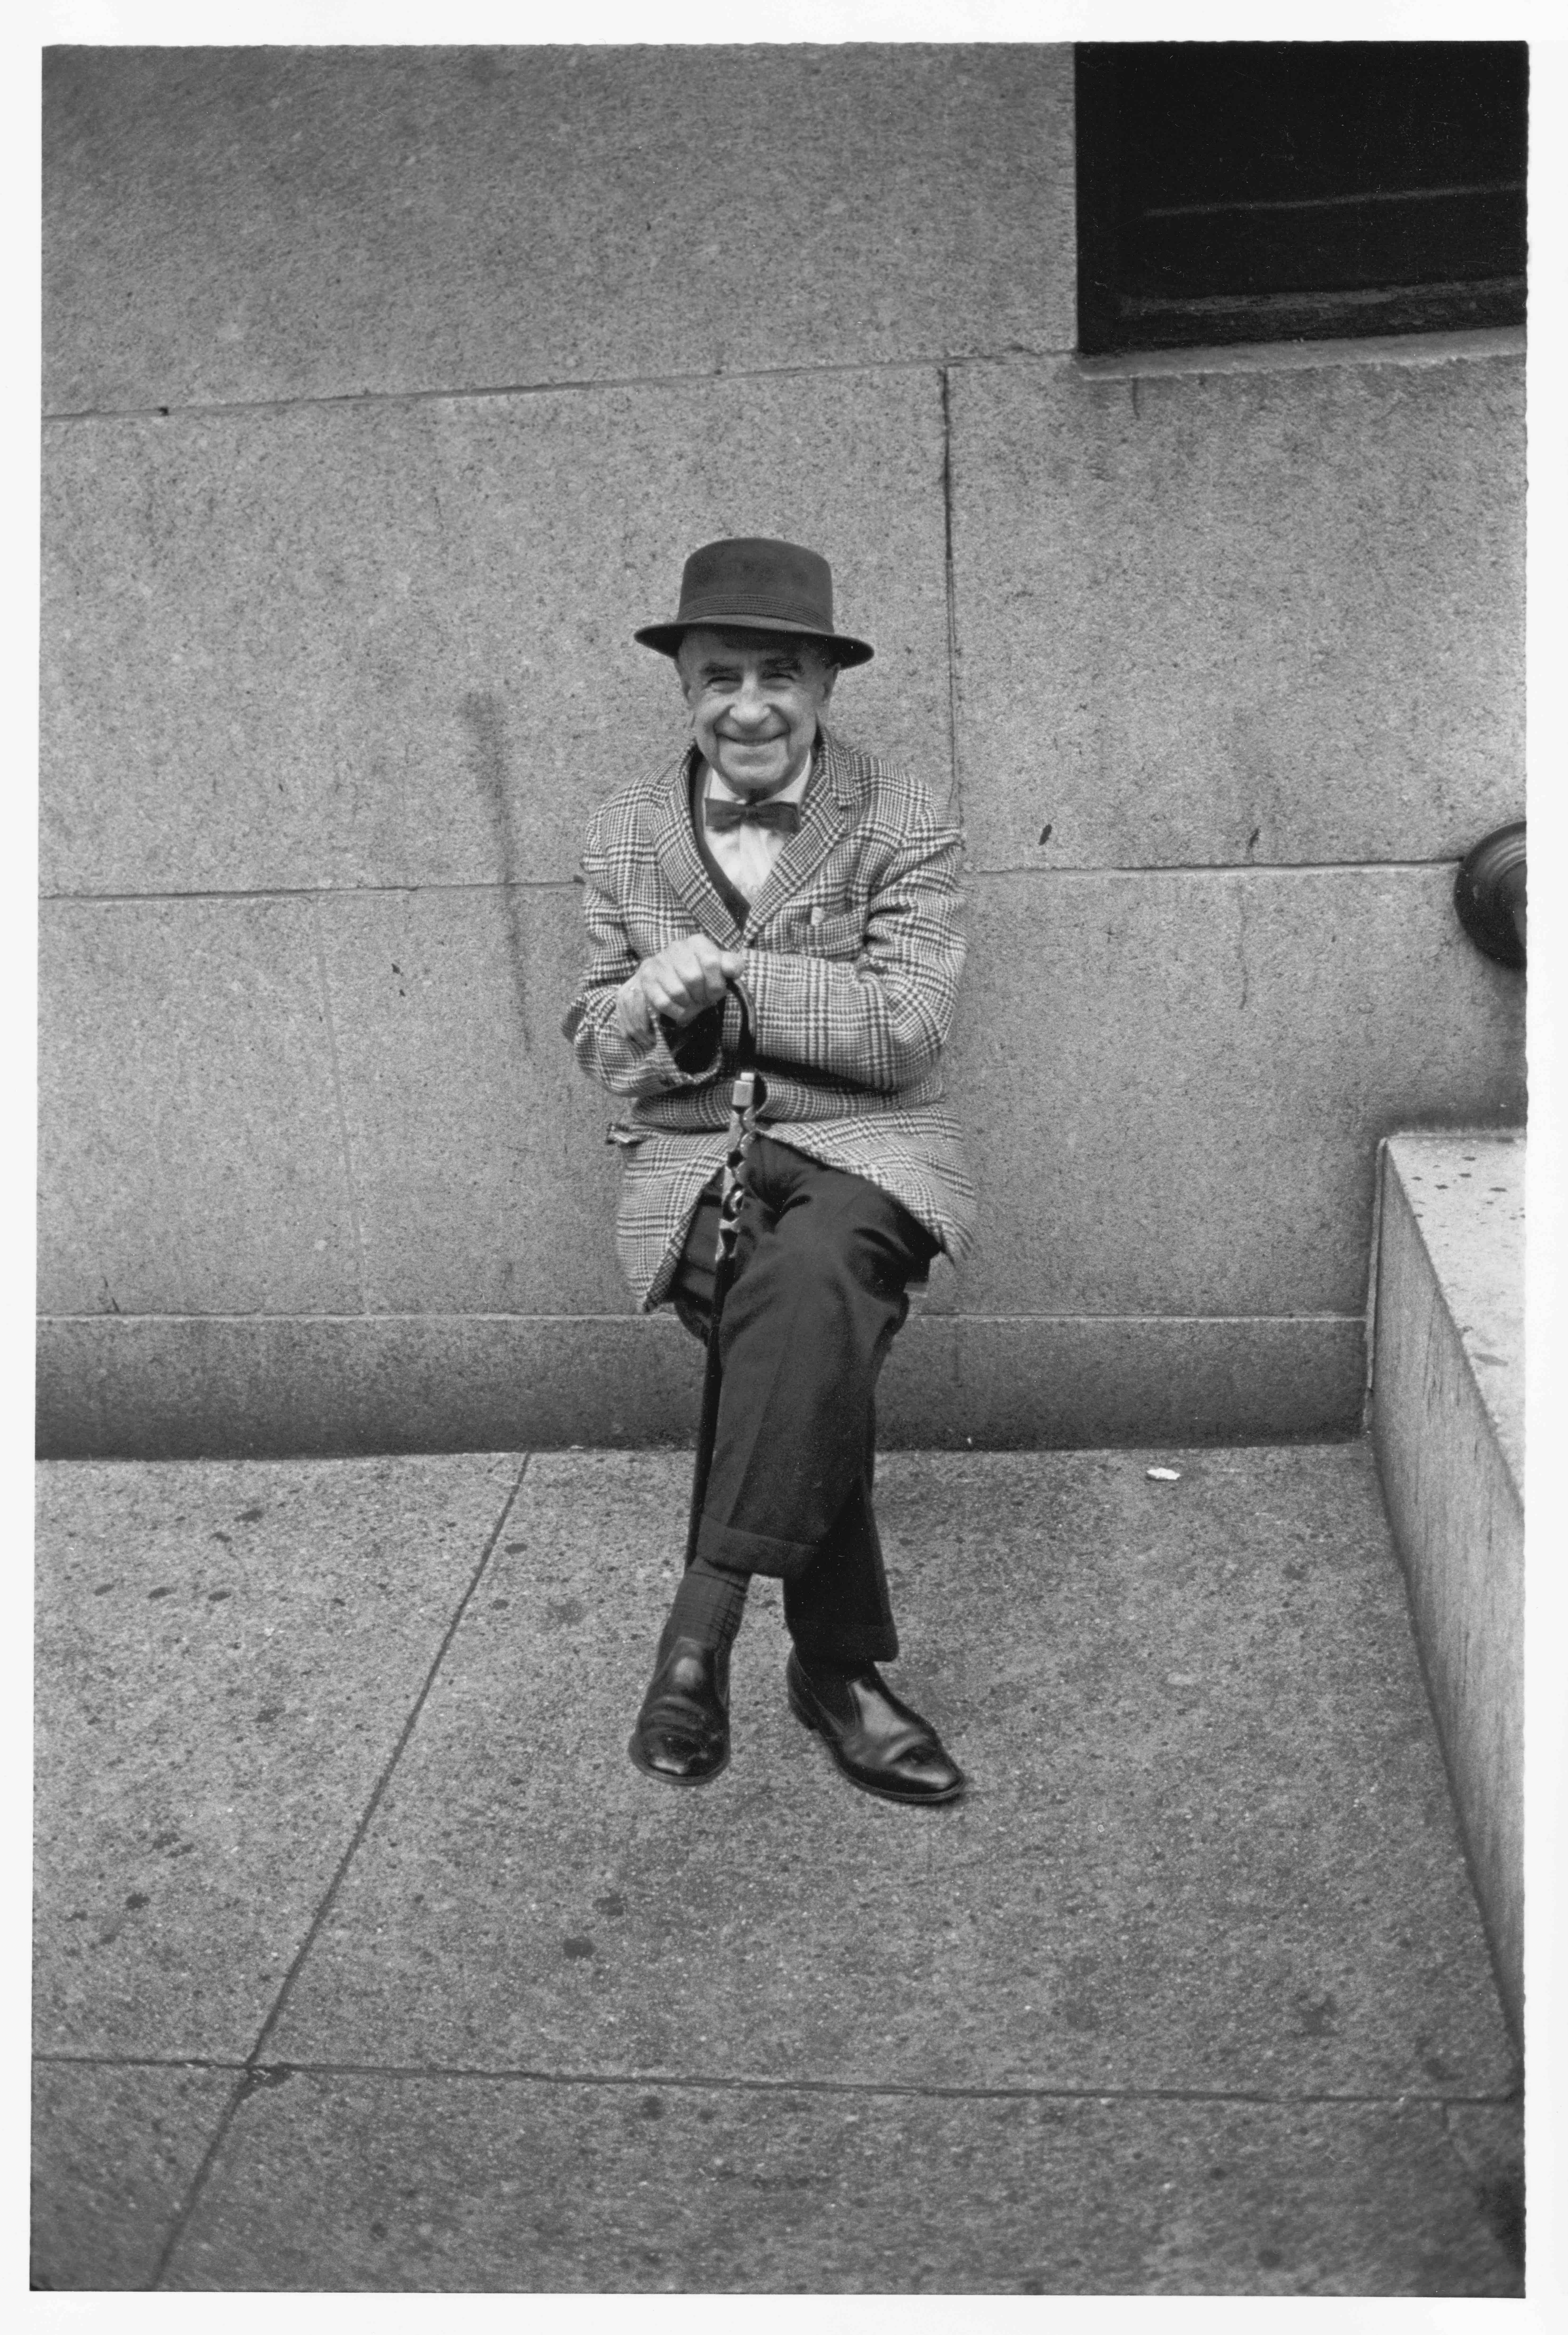 Gentleman resting at the side of a building, 1967